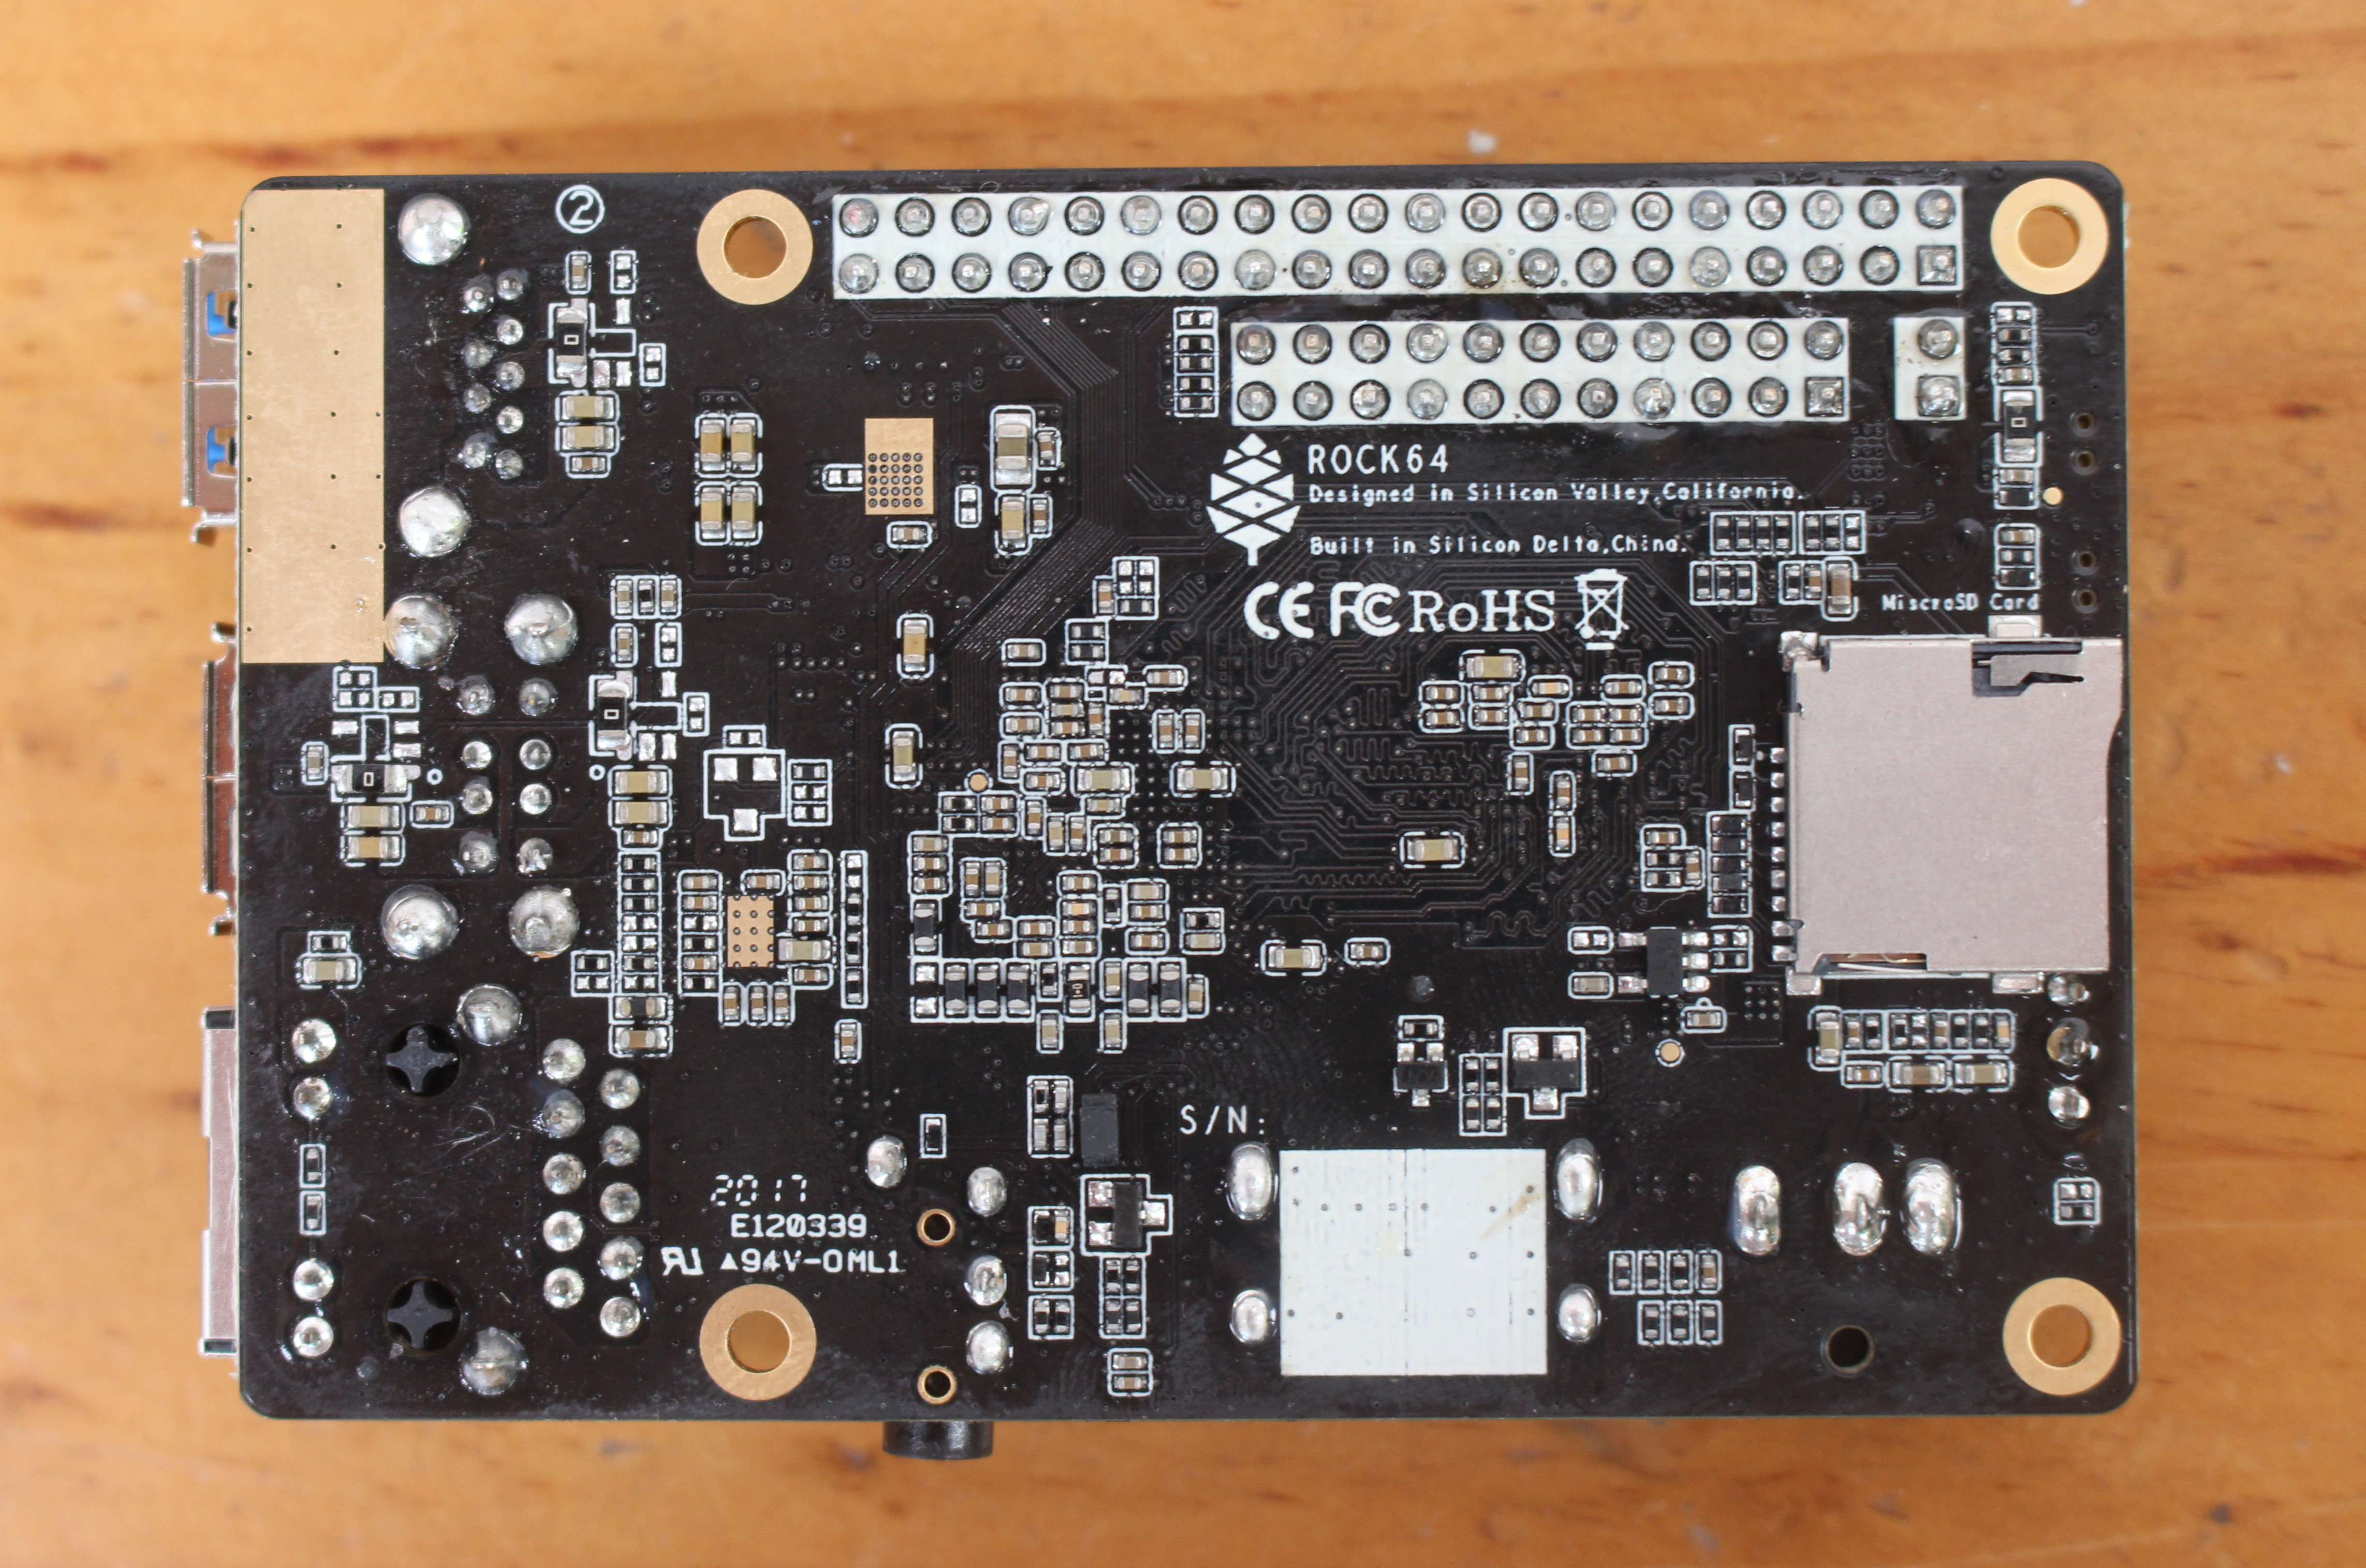 ROCK64 is a Rockchip RK3328 Development Board with Up to 4GB